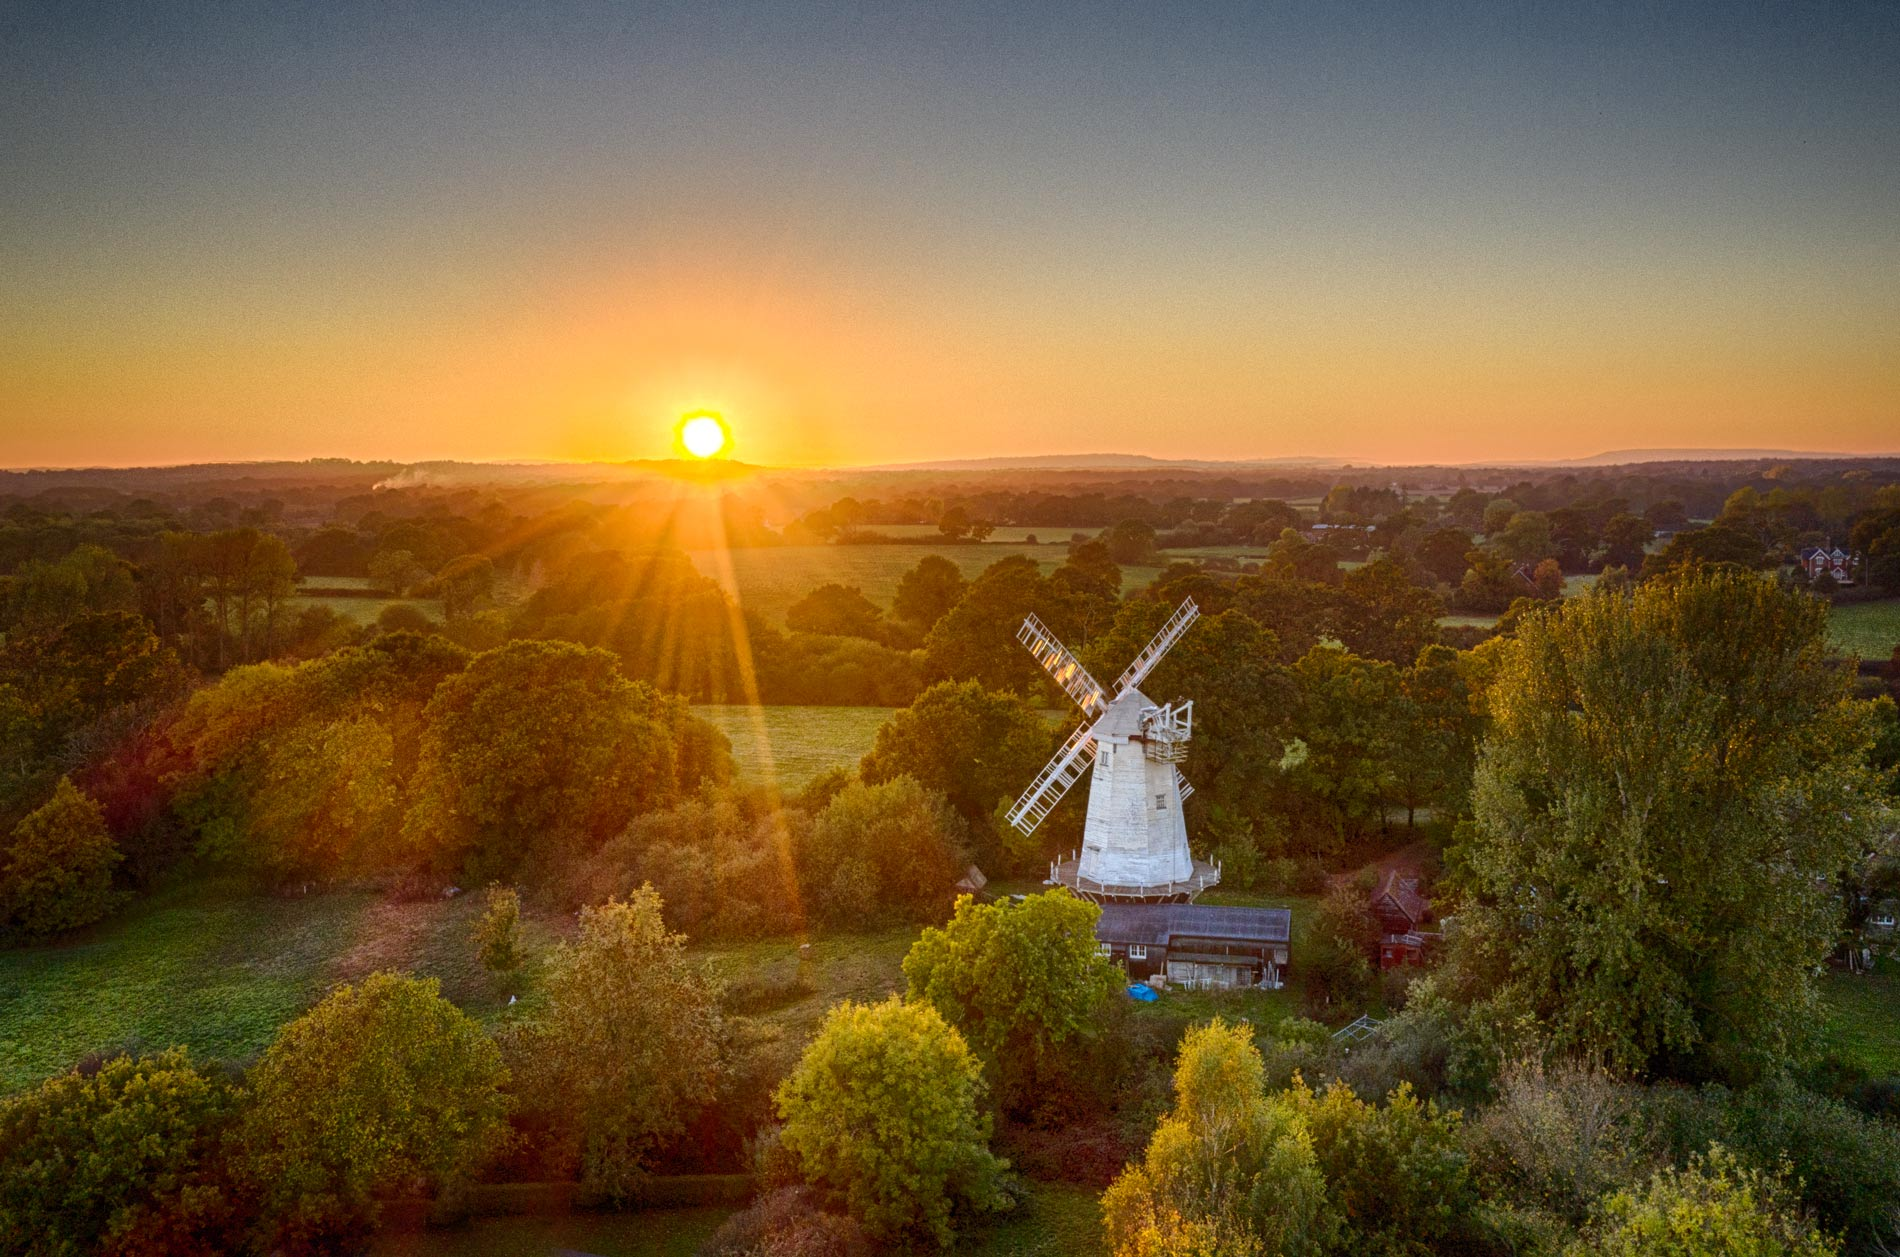 Jonathan Creeks Windmill, Shipley, Sussex